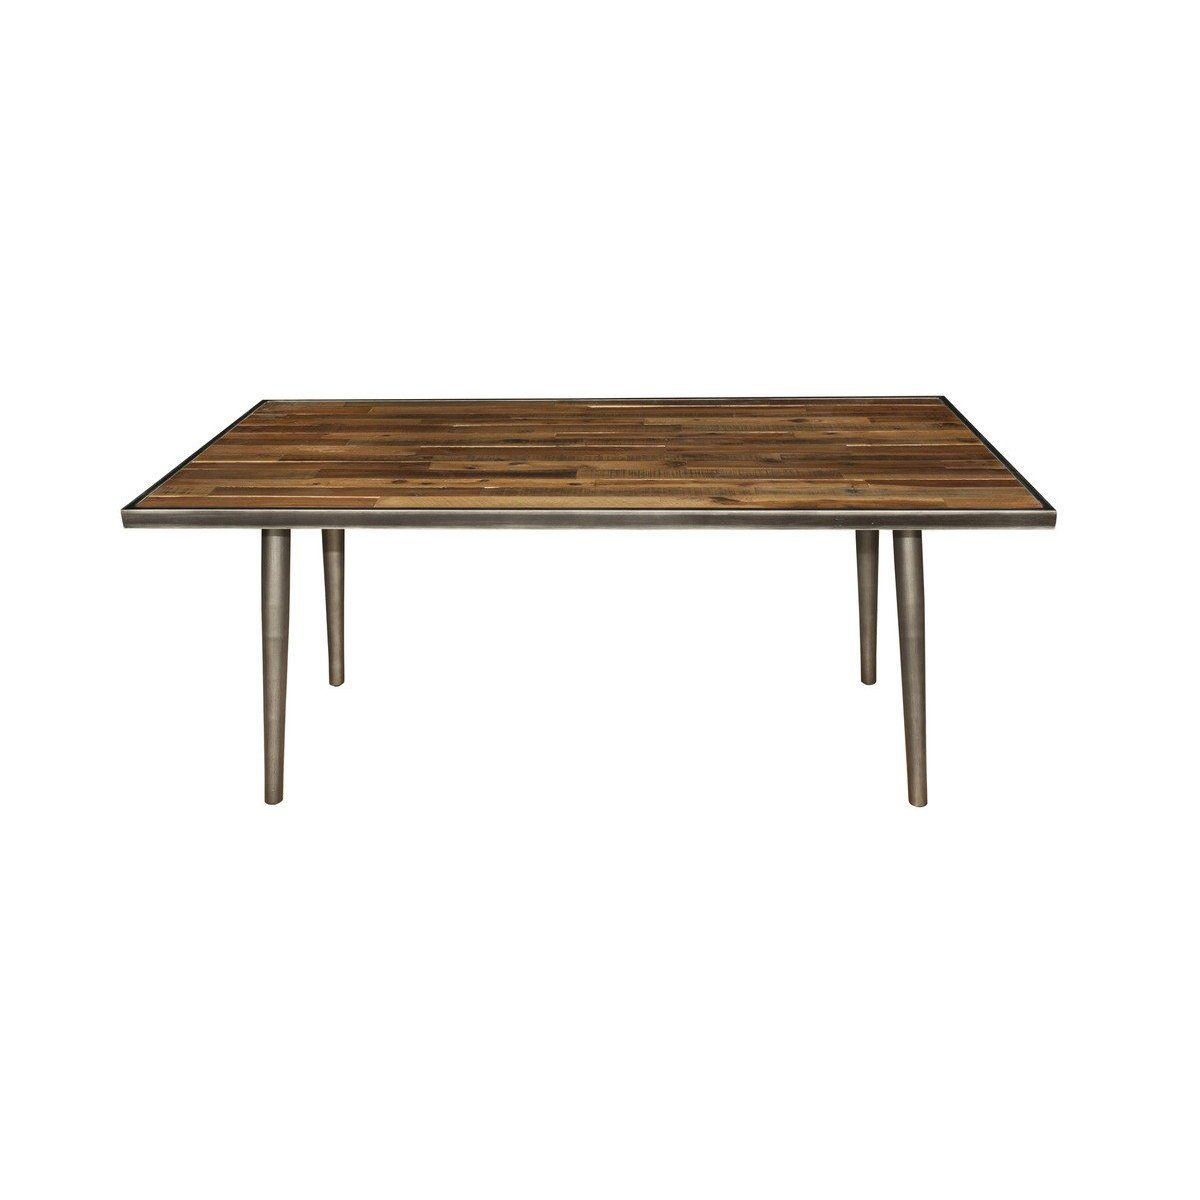 SOLID ACACIA WOOD Vintage Dining Table